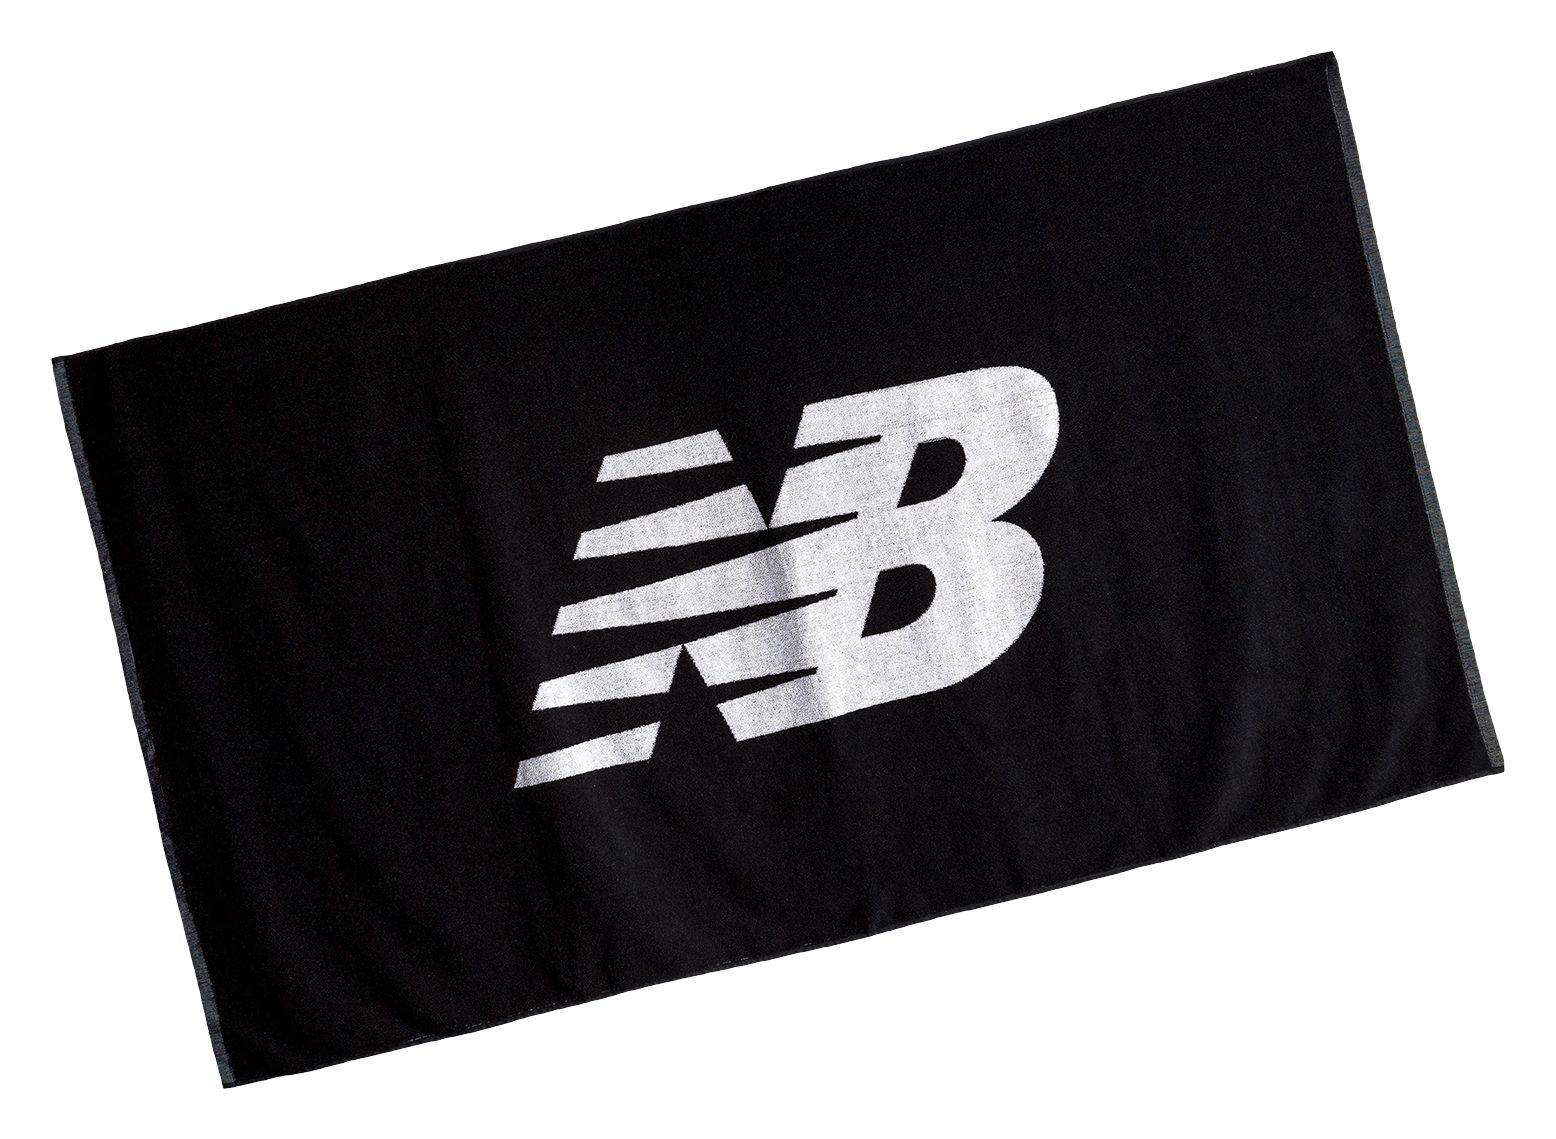 NB Large NB Towel, Black with White